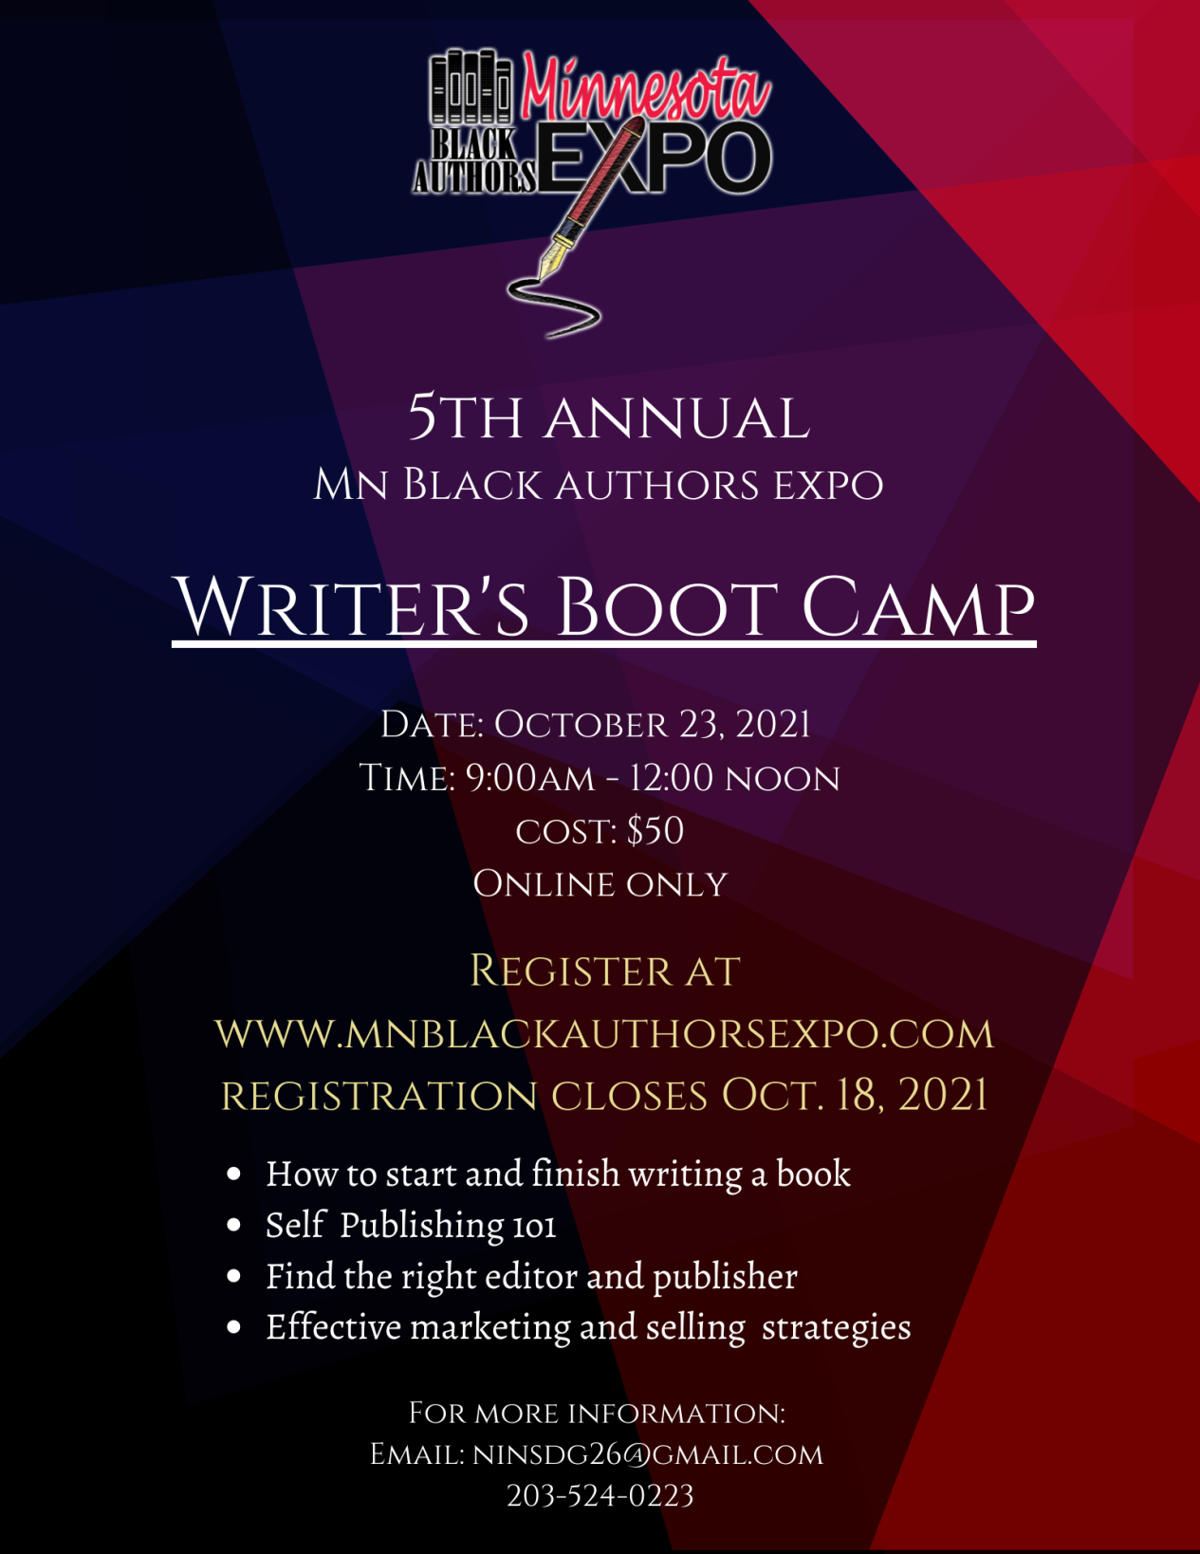 Minnesota Black Author Expo (4 x 6 in) (Poster) (8.2 x 11 in) (8.5 x 11 in)